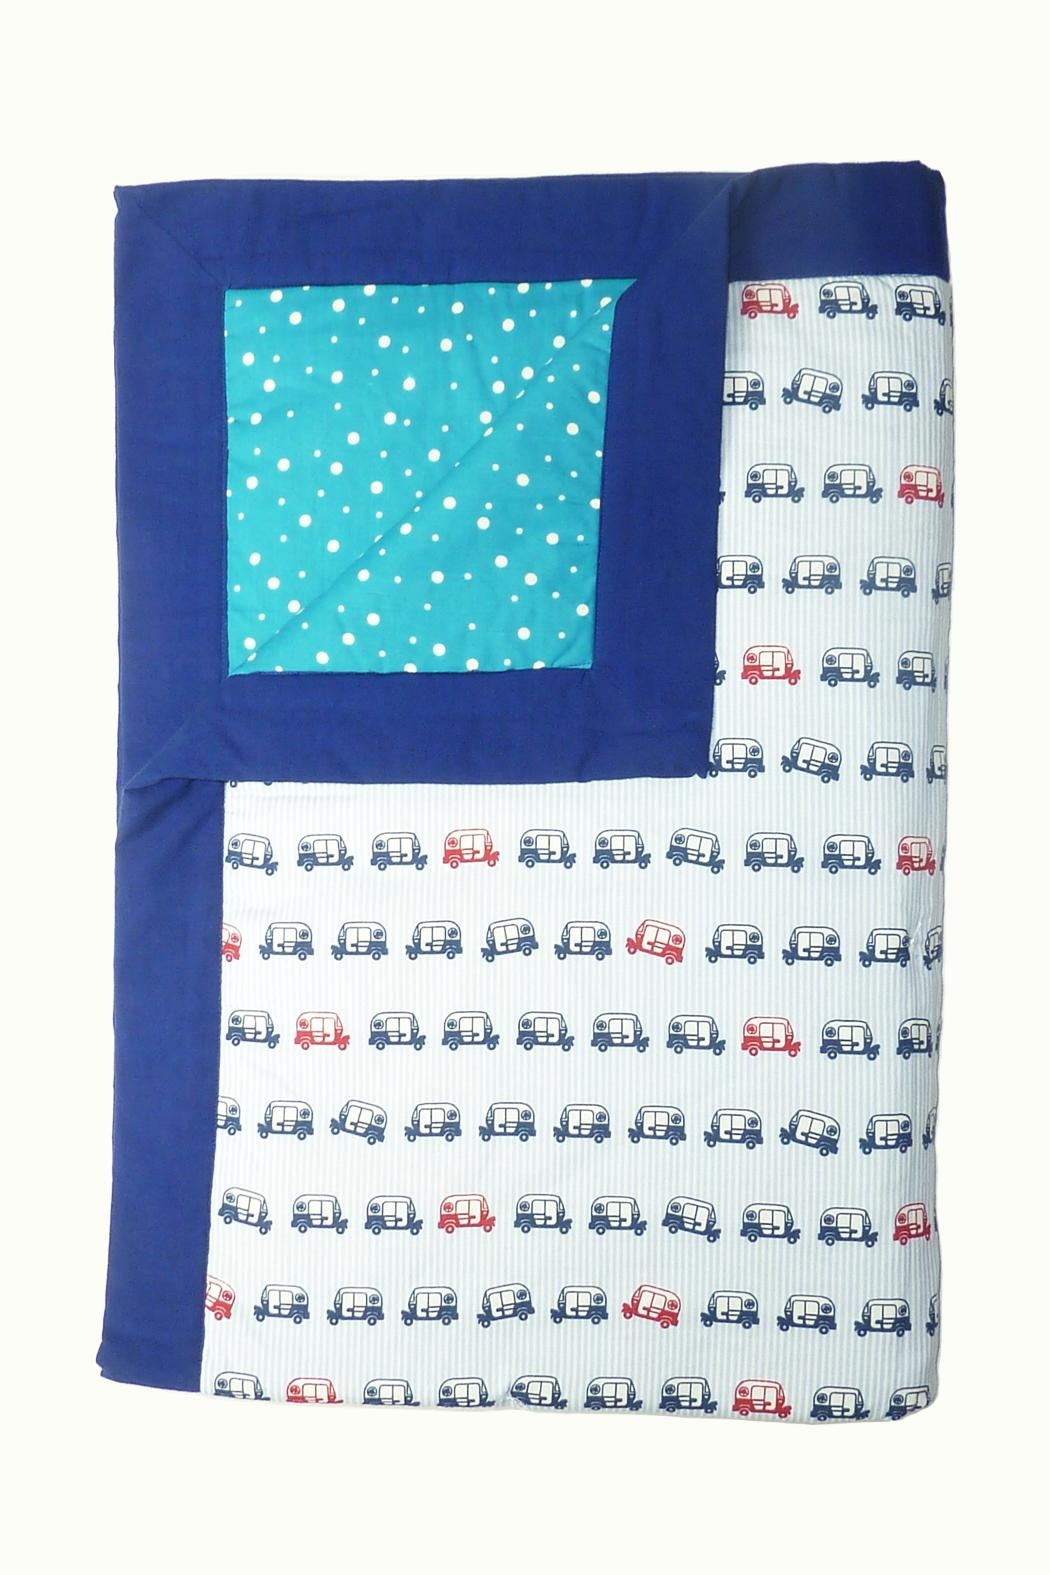 ie Baby Quilt S - Main Image